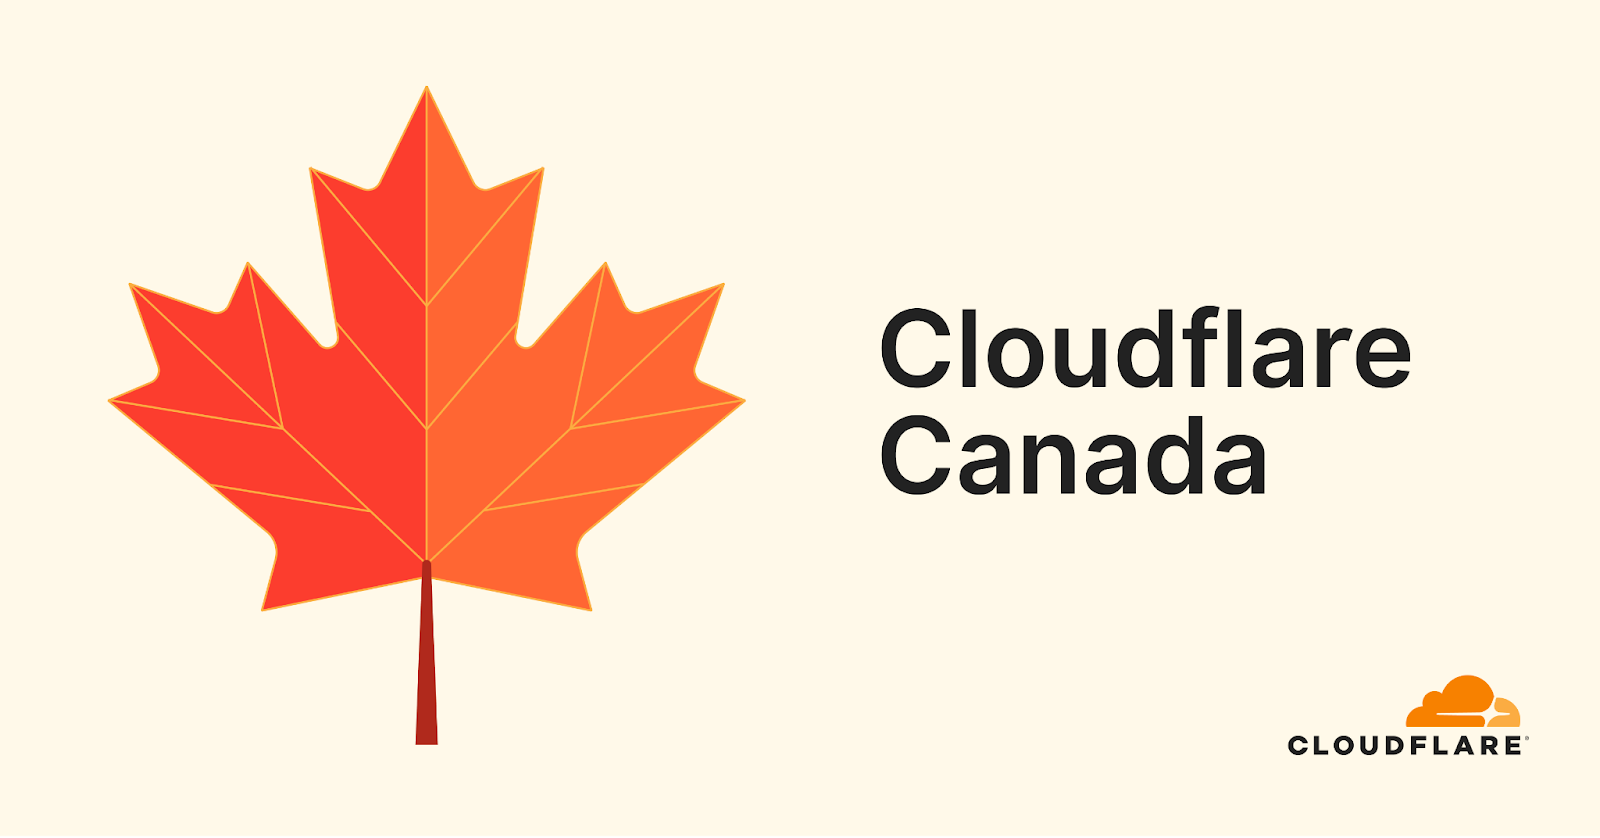 Why I'm helping Cloudflare grow in Canada